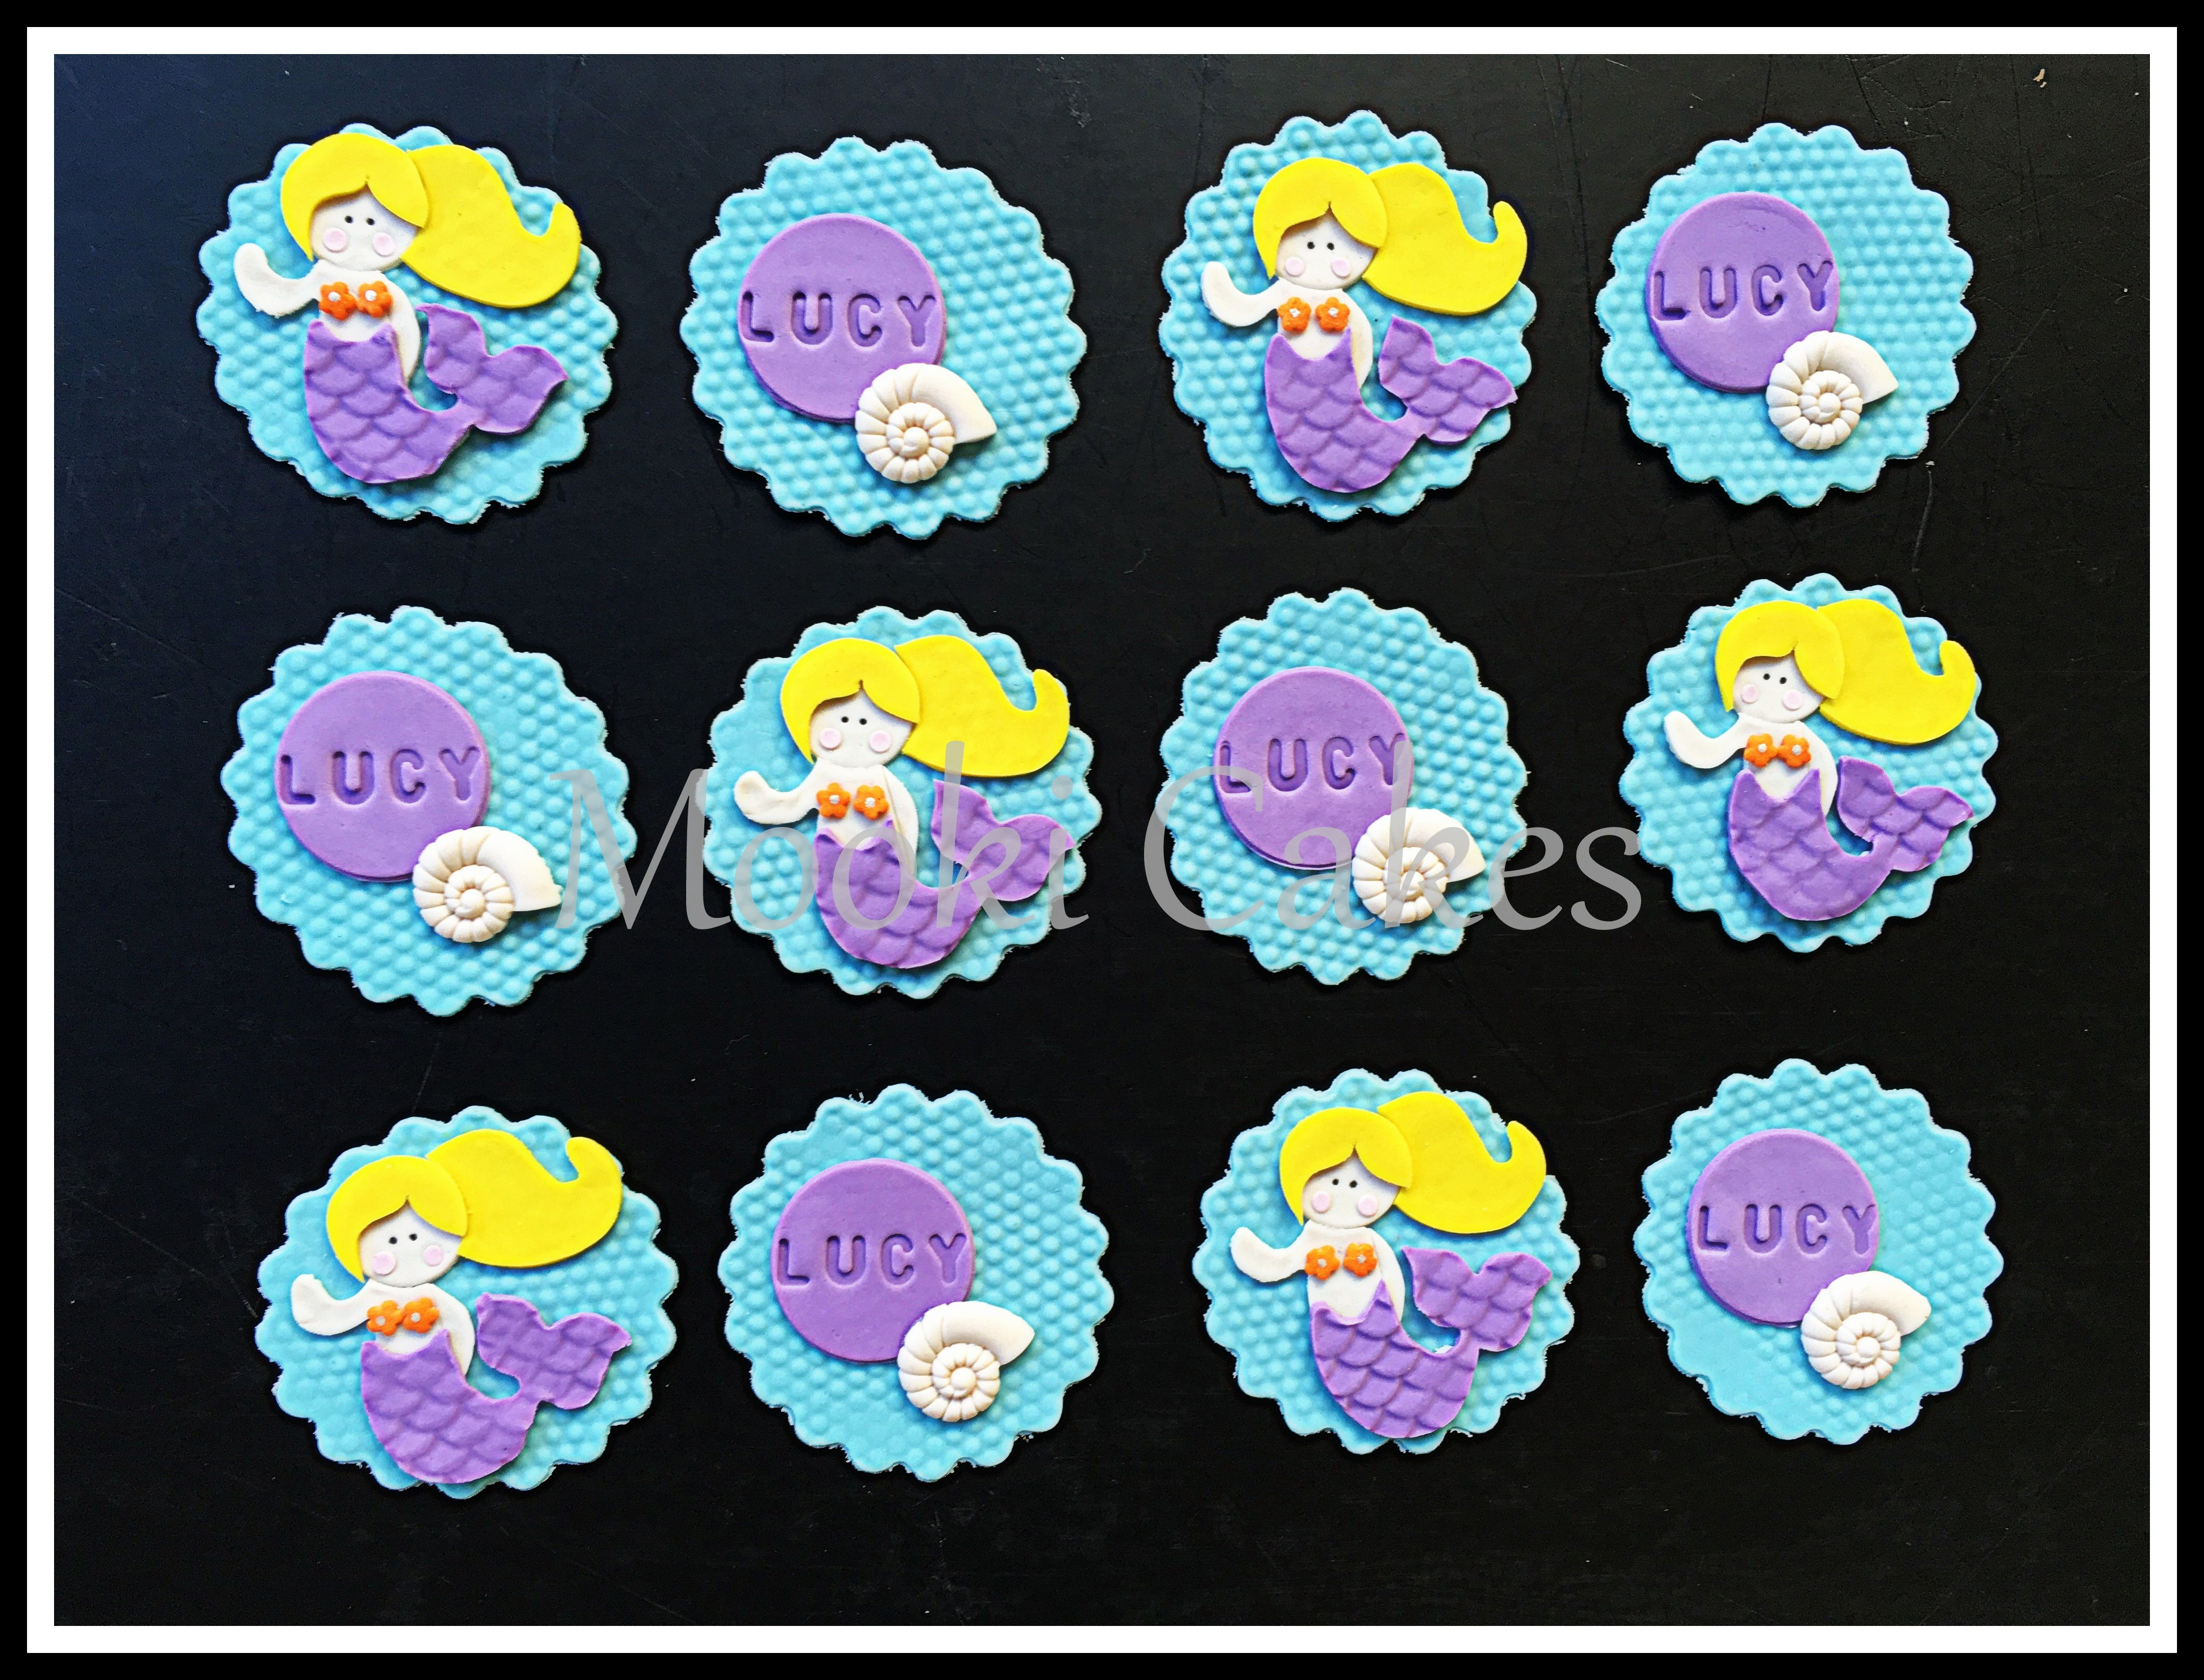 Mermaid-themed cupcake toppers.